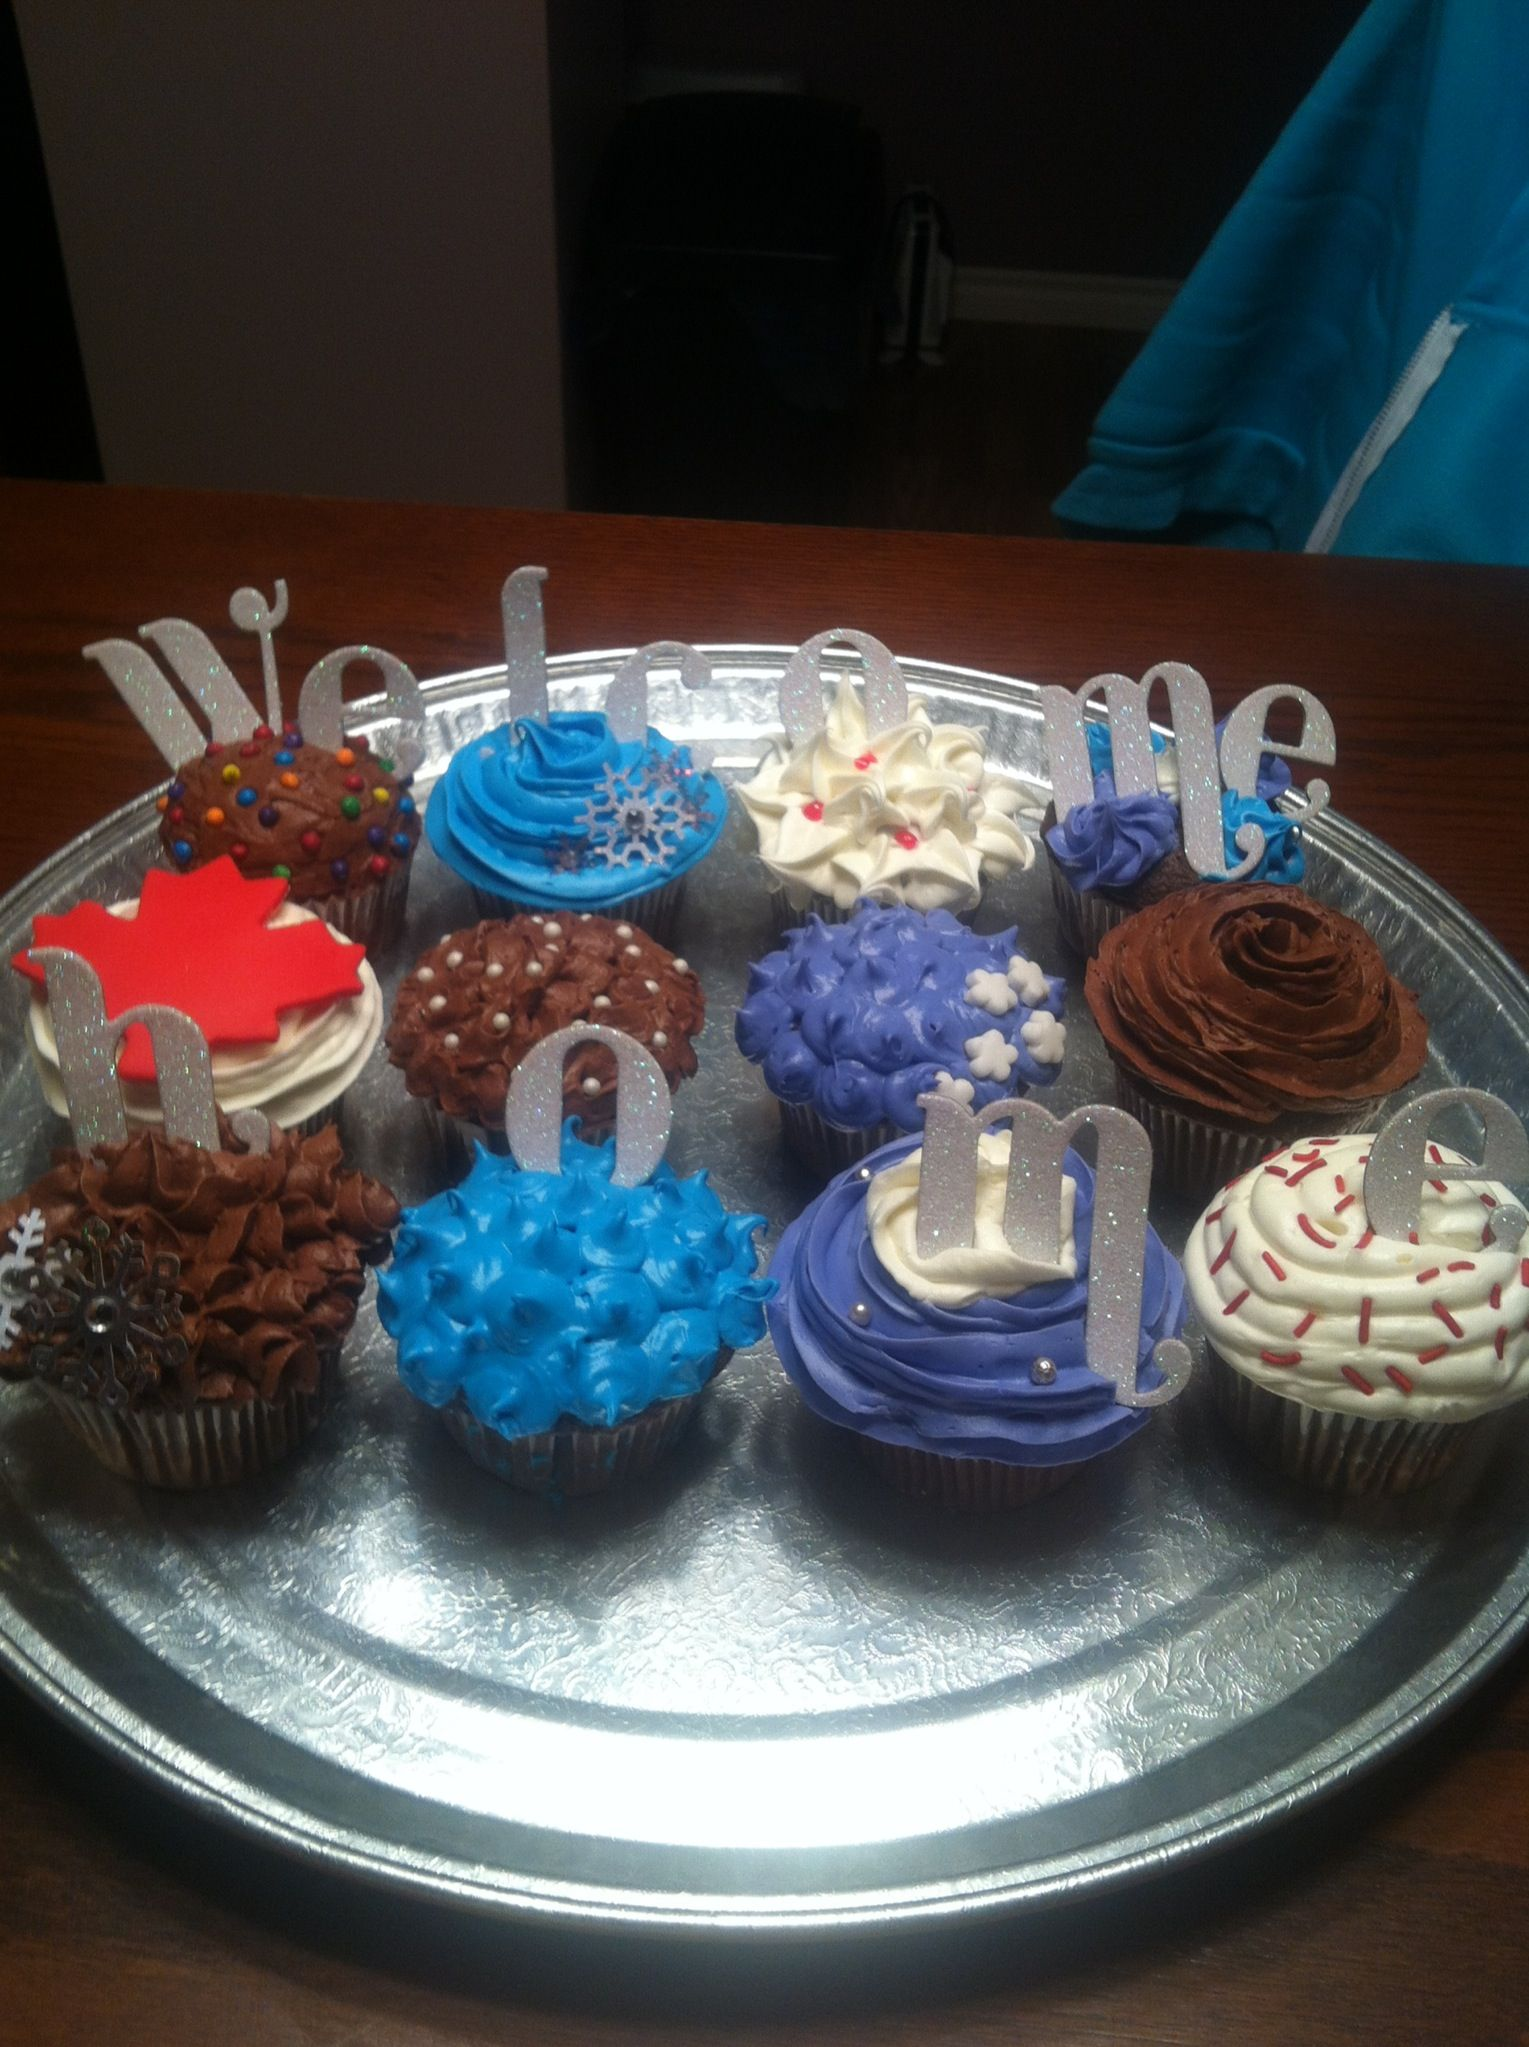 Cupcakes welcome home cake decorating icing welcome for Welcome home party supplies decorations